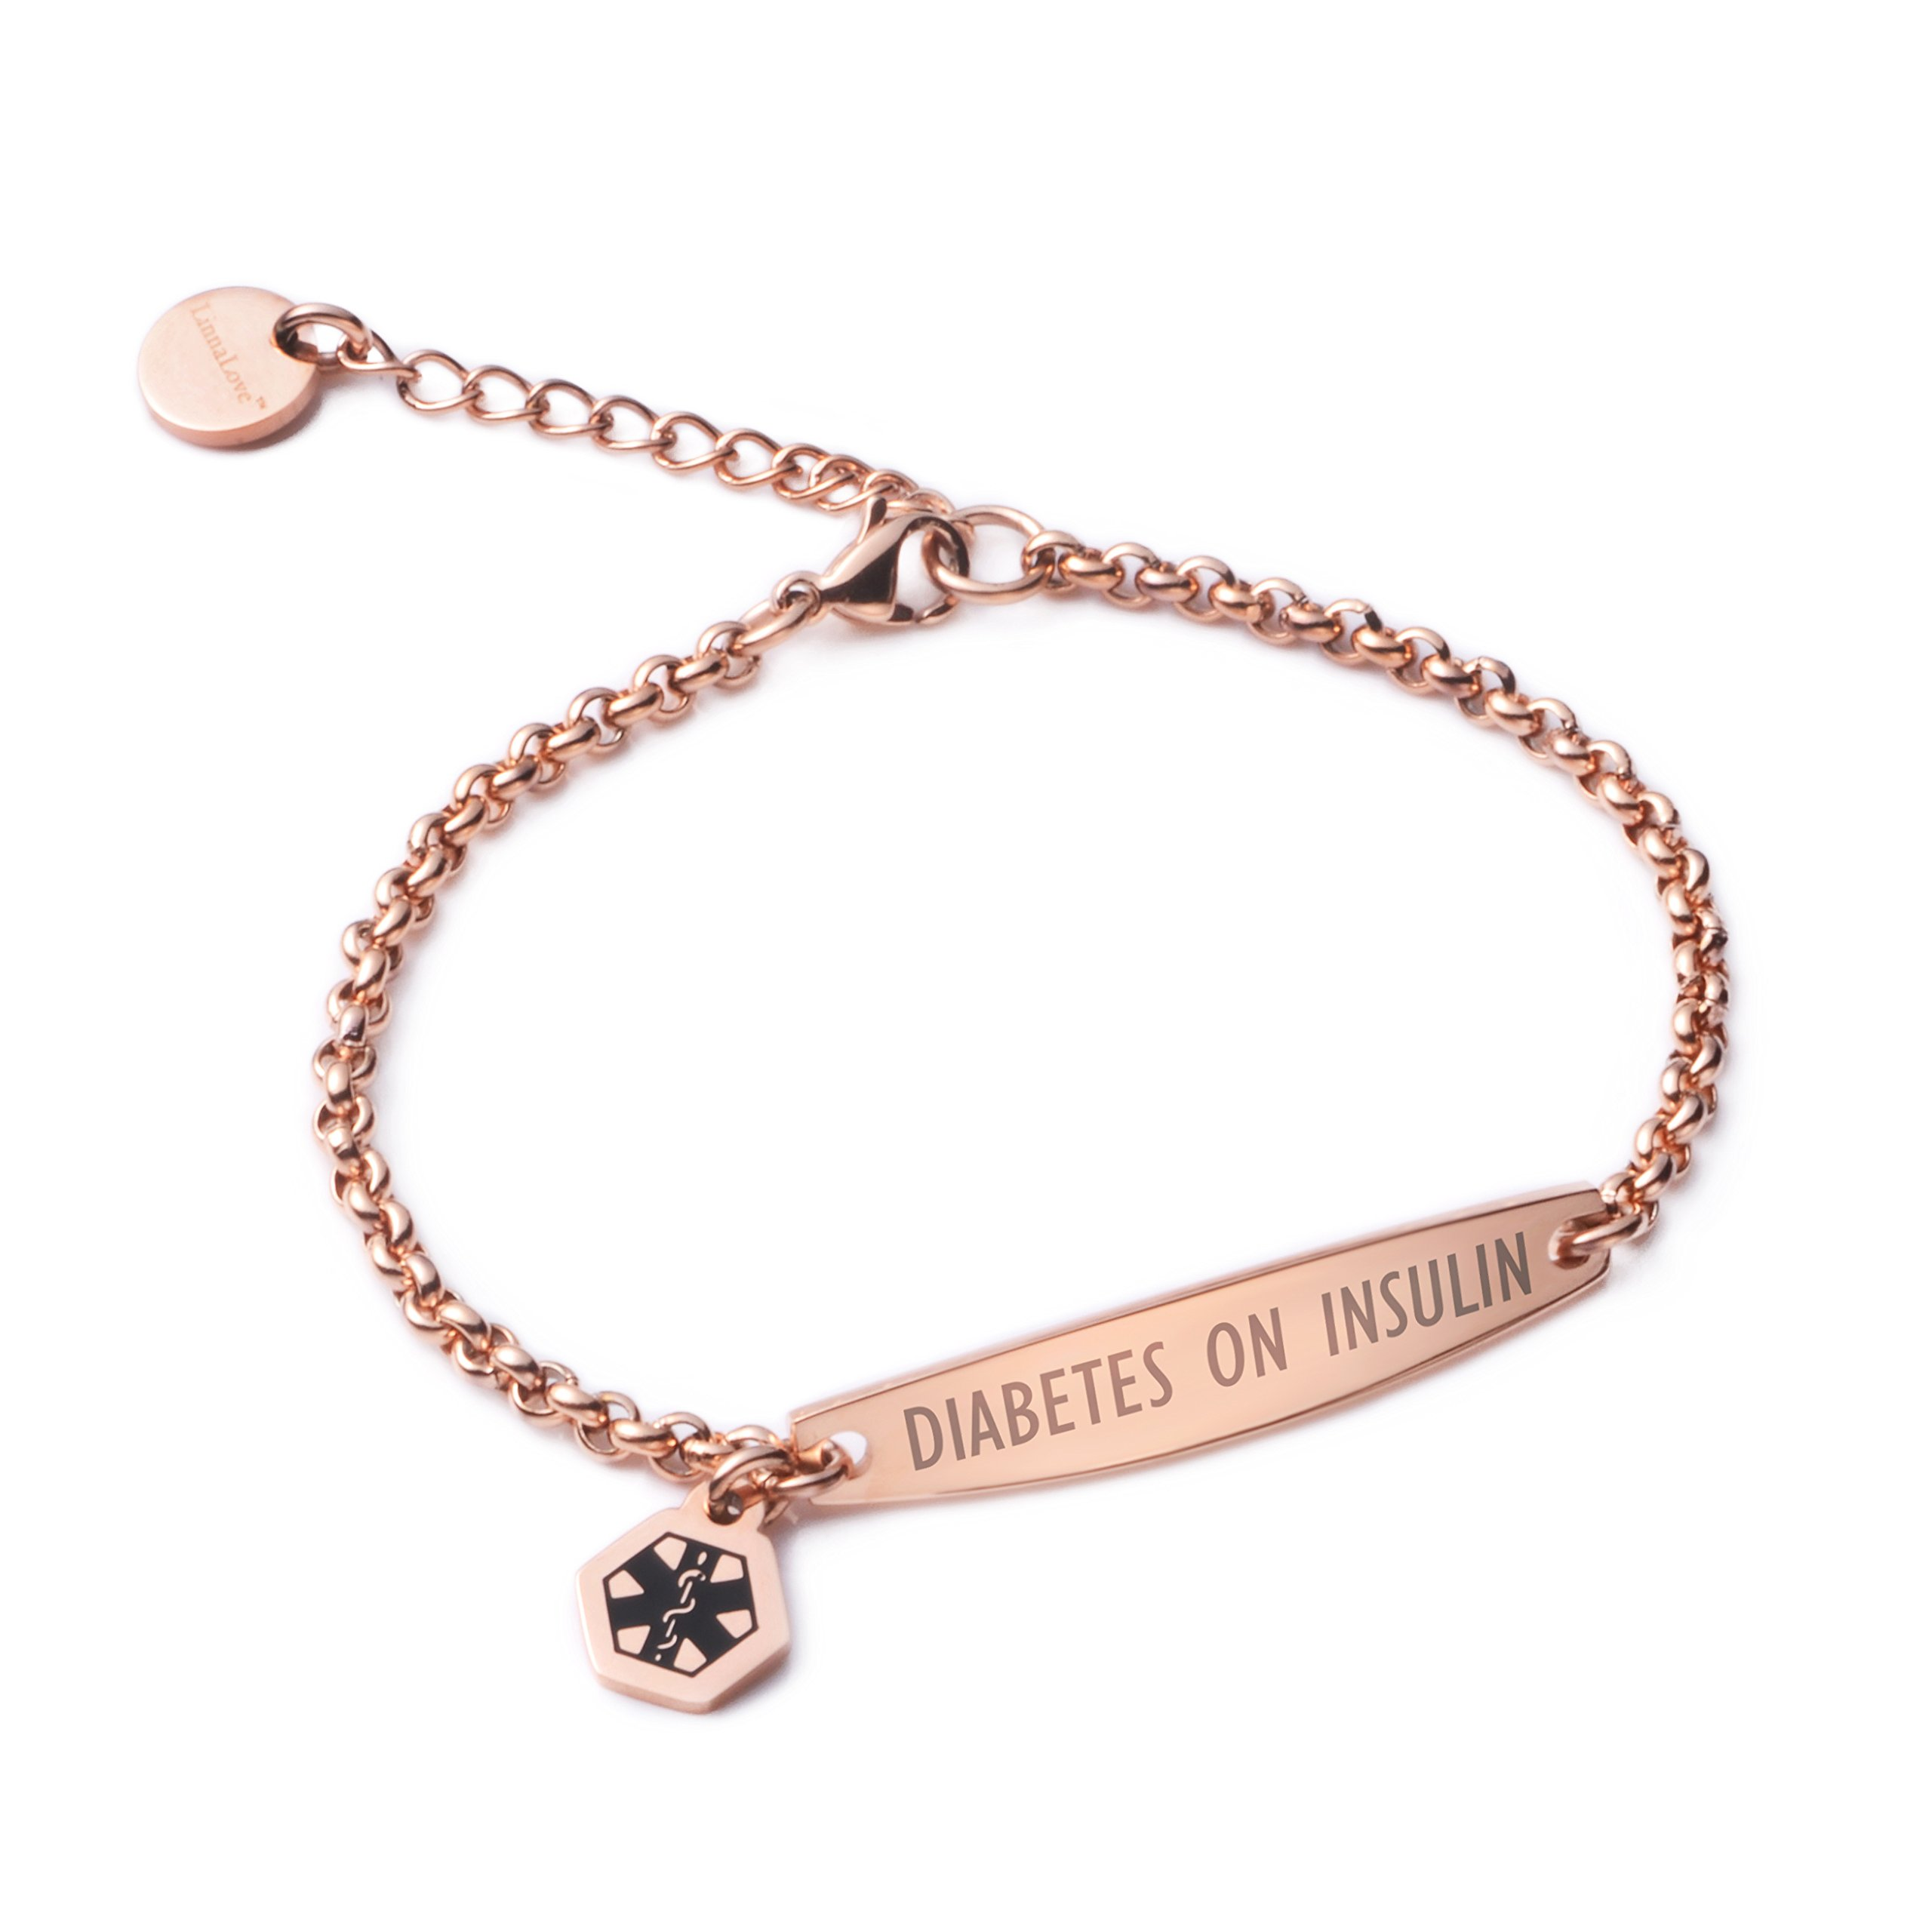 LinnaLove-Pre-engraved DIABETES ON INSULIN Rose Gold Simple Rolo chain Medical id bracelet for Women & girl